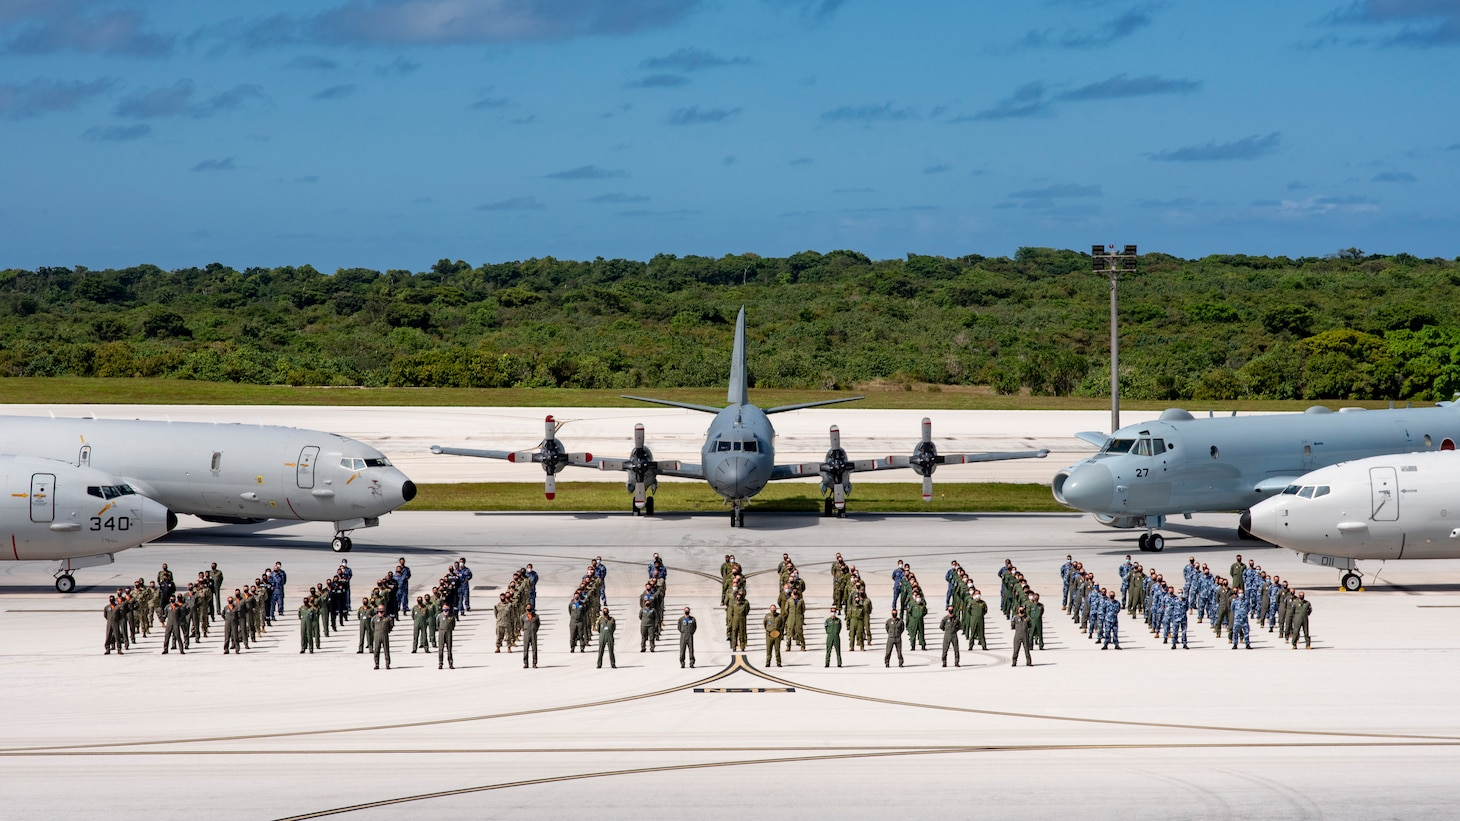 """ANDERSEN AIR FORCE BASE, Guam (Jan. 28, 2021) Members of the Royal Australian Air Force (RAAF), Japan Maritime Self Defense Force (JMSDF), Indian Navy (IN) and the Royal Canadian Air Force (RCAF), along with Patrol Squadron (VP) 5's """"Mad Foxes"""" and VP 8's """"Fighting Tigers"""", pose for a photo at the conclusion of Exercise Sea Dragon. Sea Dragon is an annual multi-lateral anti-submarine warfare exercise that improves the interoperability elements required to effectively and cohesively respond to the defense of a regional contingency in the Indo-Pacific, while continuing to build and strengthen relationships held between nations . As the U.S. Navy's largest forward-deployed fleet, 7th Fleet employs 50 to 70 ships and submarines across the Western Pacific and Indian Oceans. U.S. 7th Fleet routinely operates and interacts with 35 maritime nations while conducting missions to preserve and protect a free and open Indo-Pacific region. (U.S. Navy photo by Lt. Cmdr. Kyle Hooker)"""